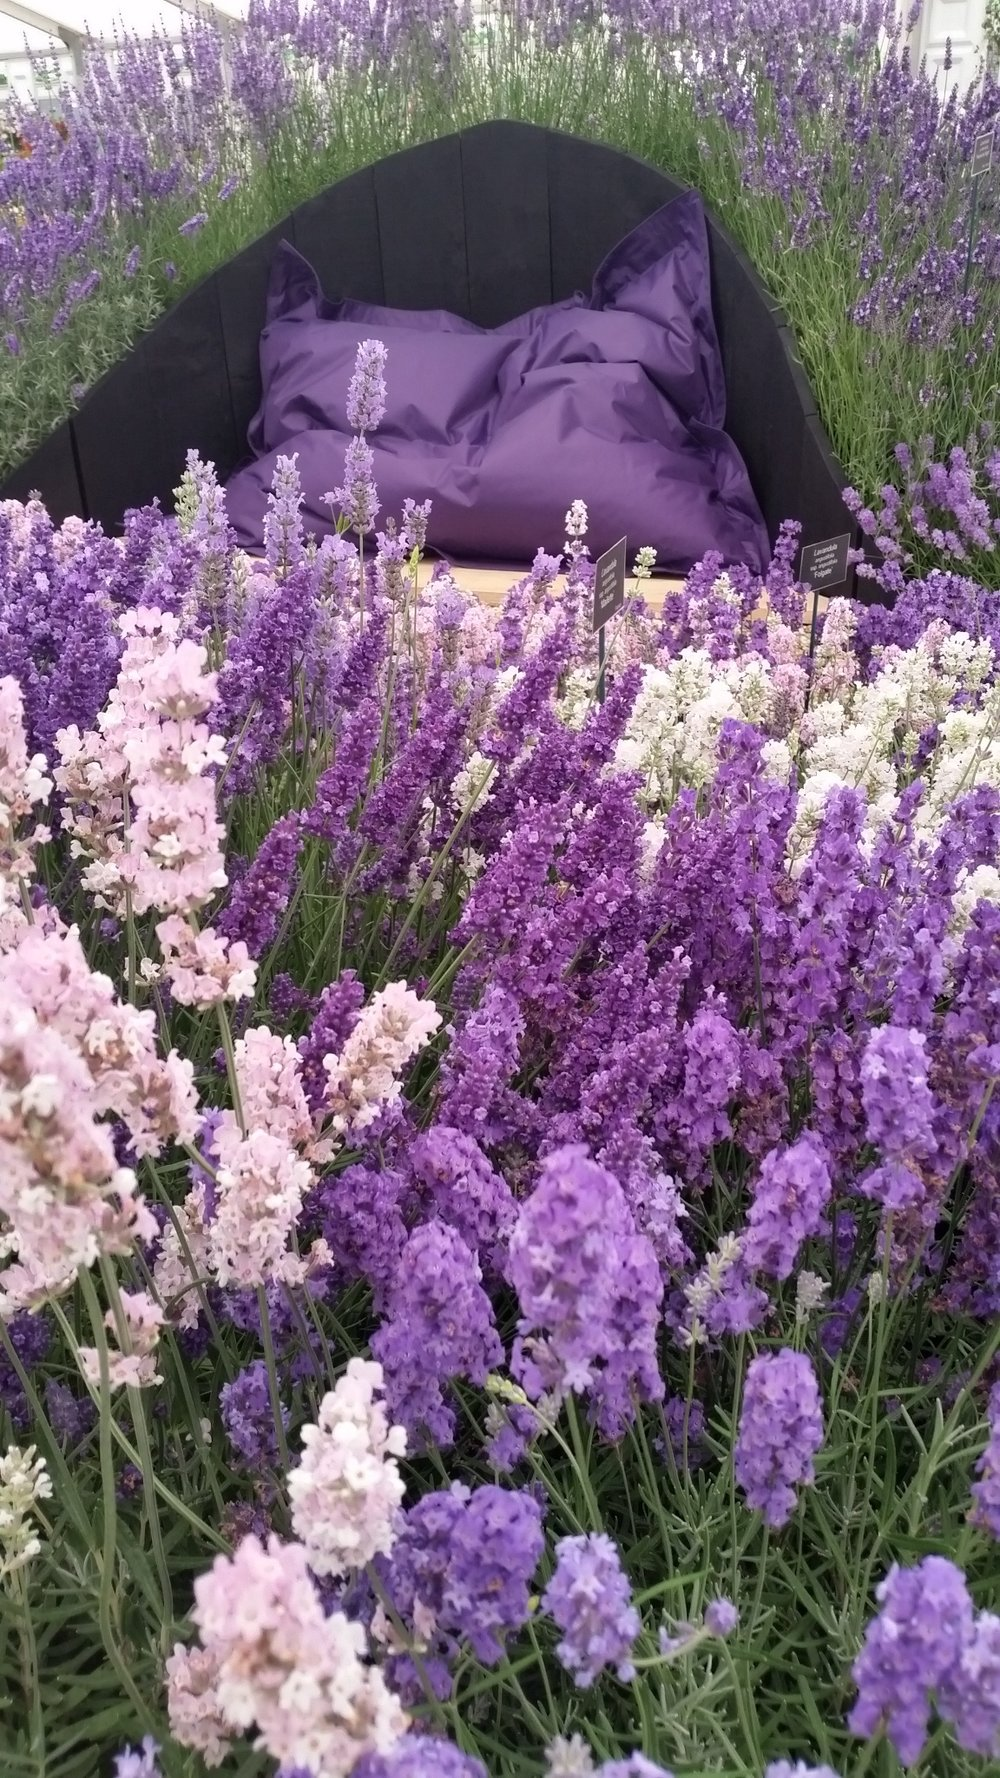 Lavender can tolerate our alkaline soil